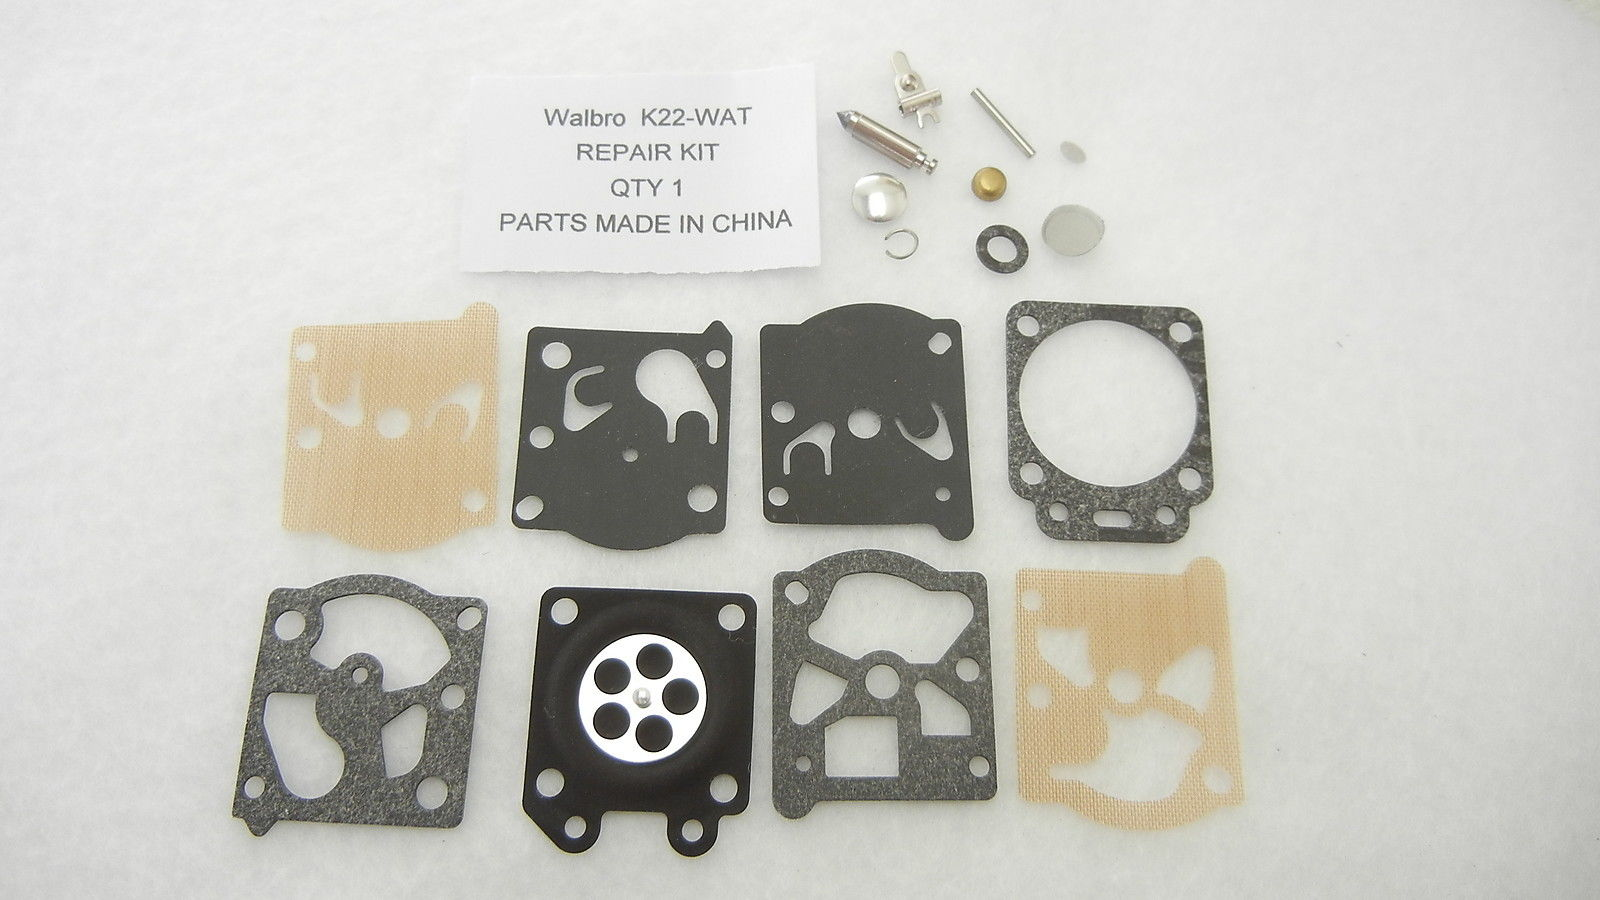 Walbro K22-WAT Carburetor Rebuild Kit